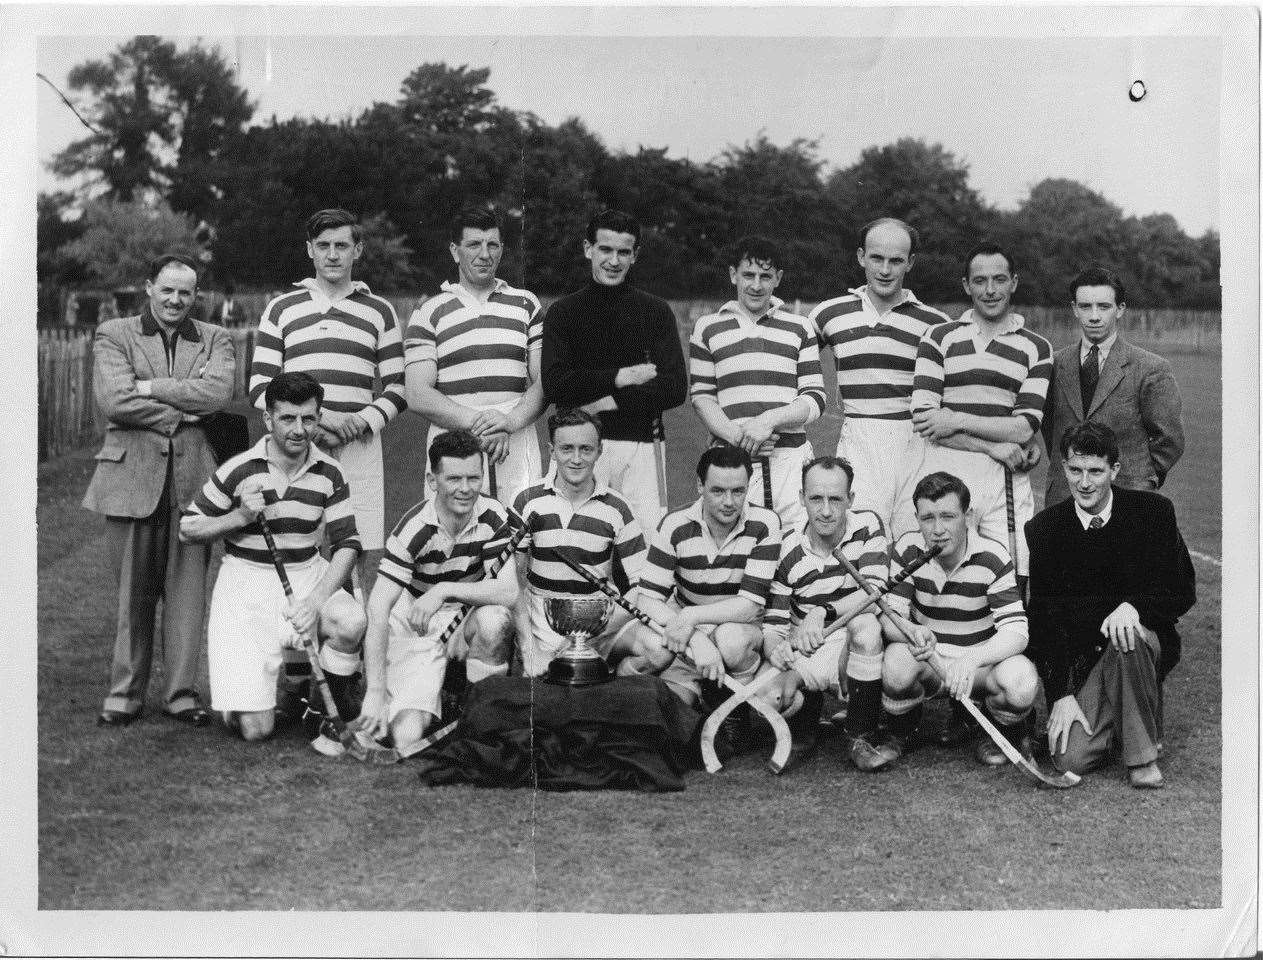 Denis Swanson (behind trophy) was Torlundy Cup winning captain in 1951 and scored the winning goal against Oban Celtic. Picture: The Shinty Archive (Hugh Dan MacLennan)